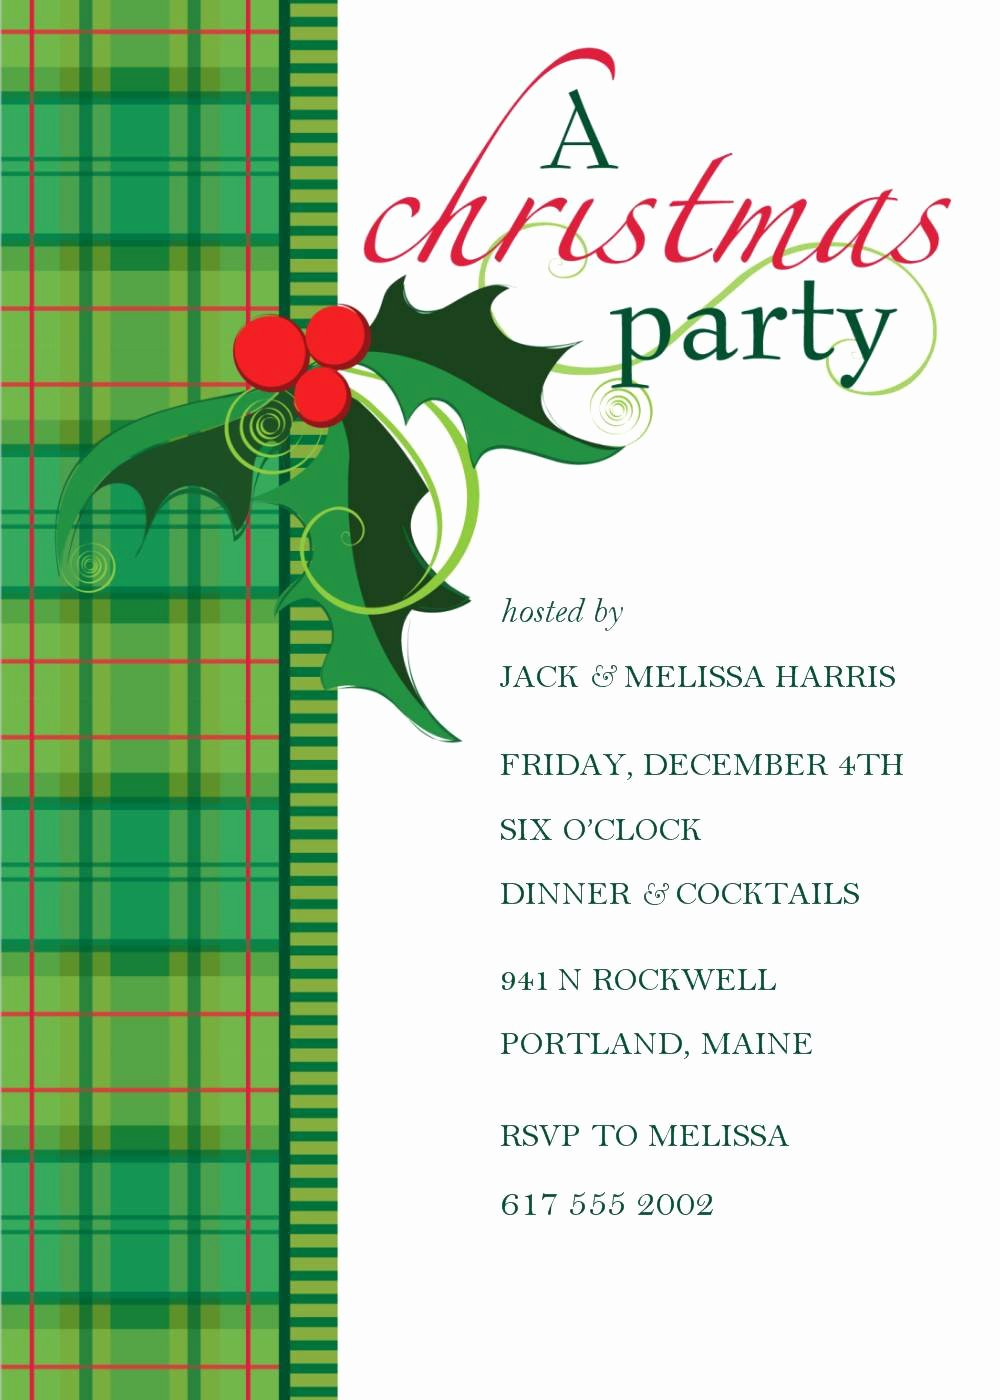 Holiday Party Invite Template Beautiful Christmas Party Invitation Template